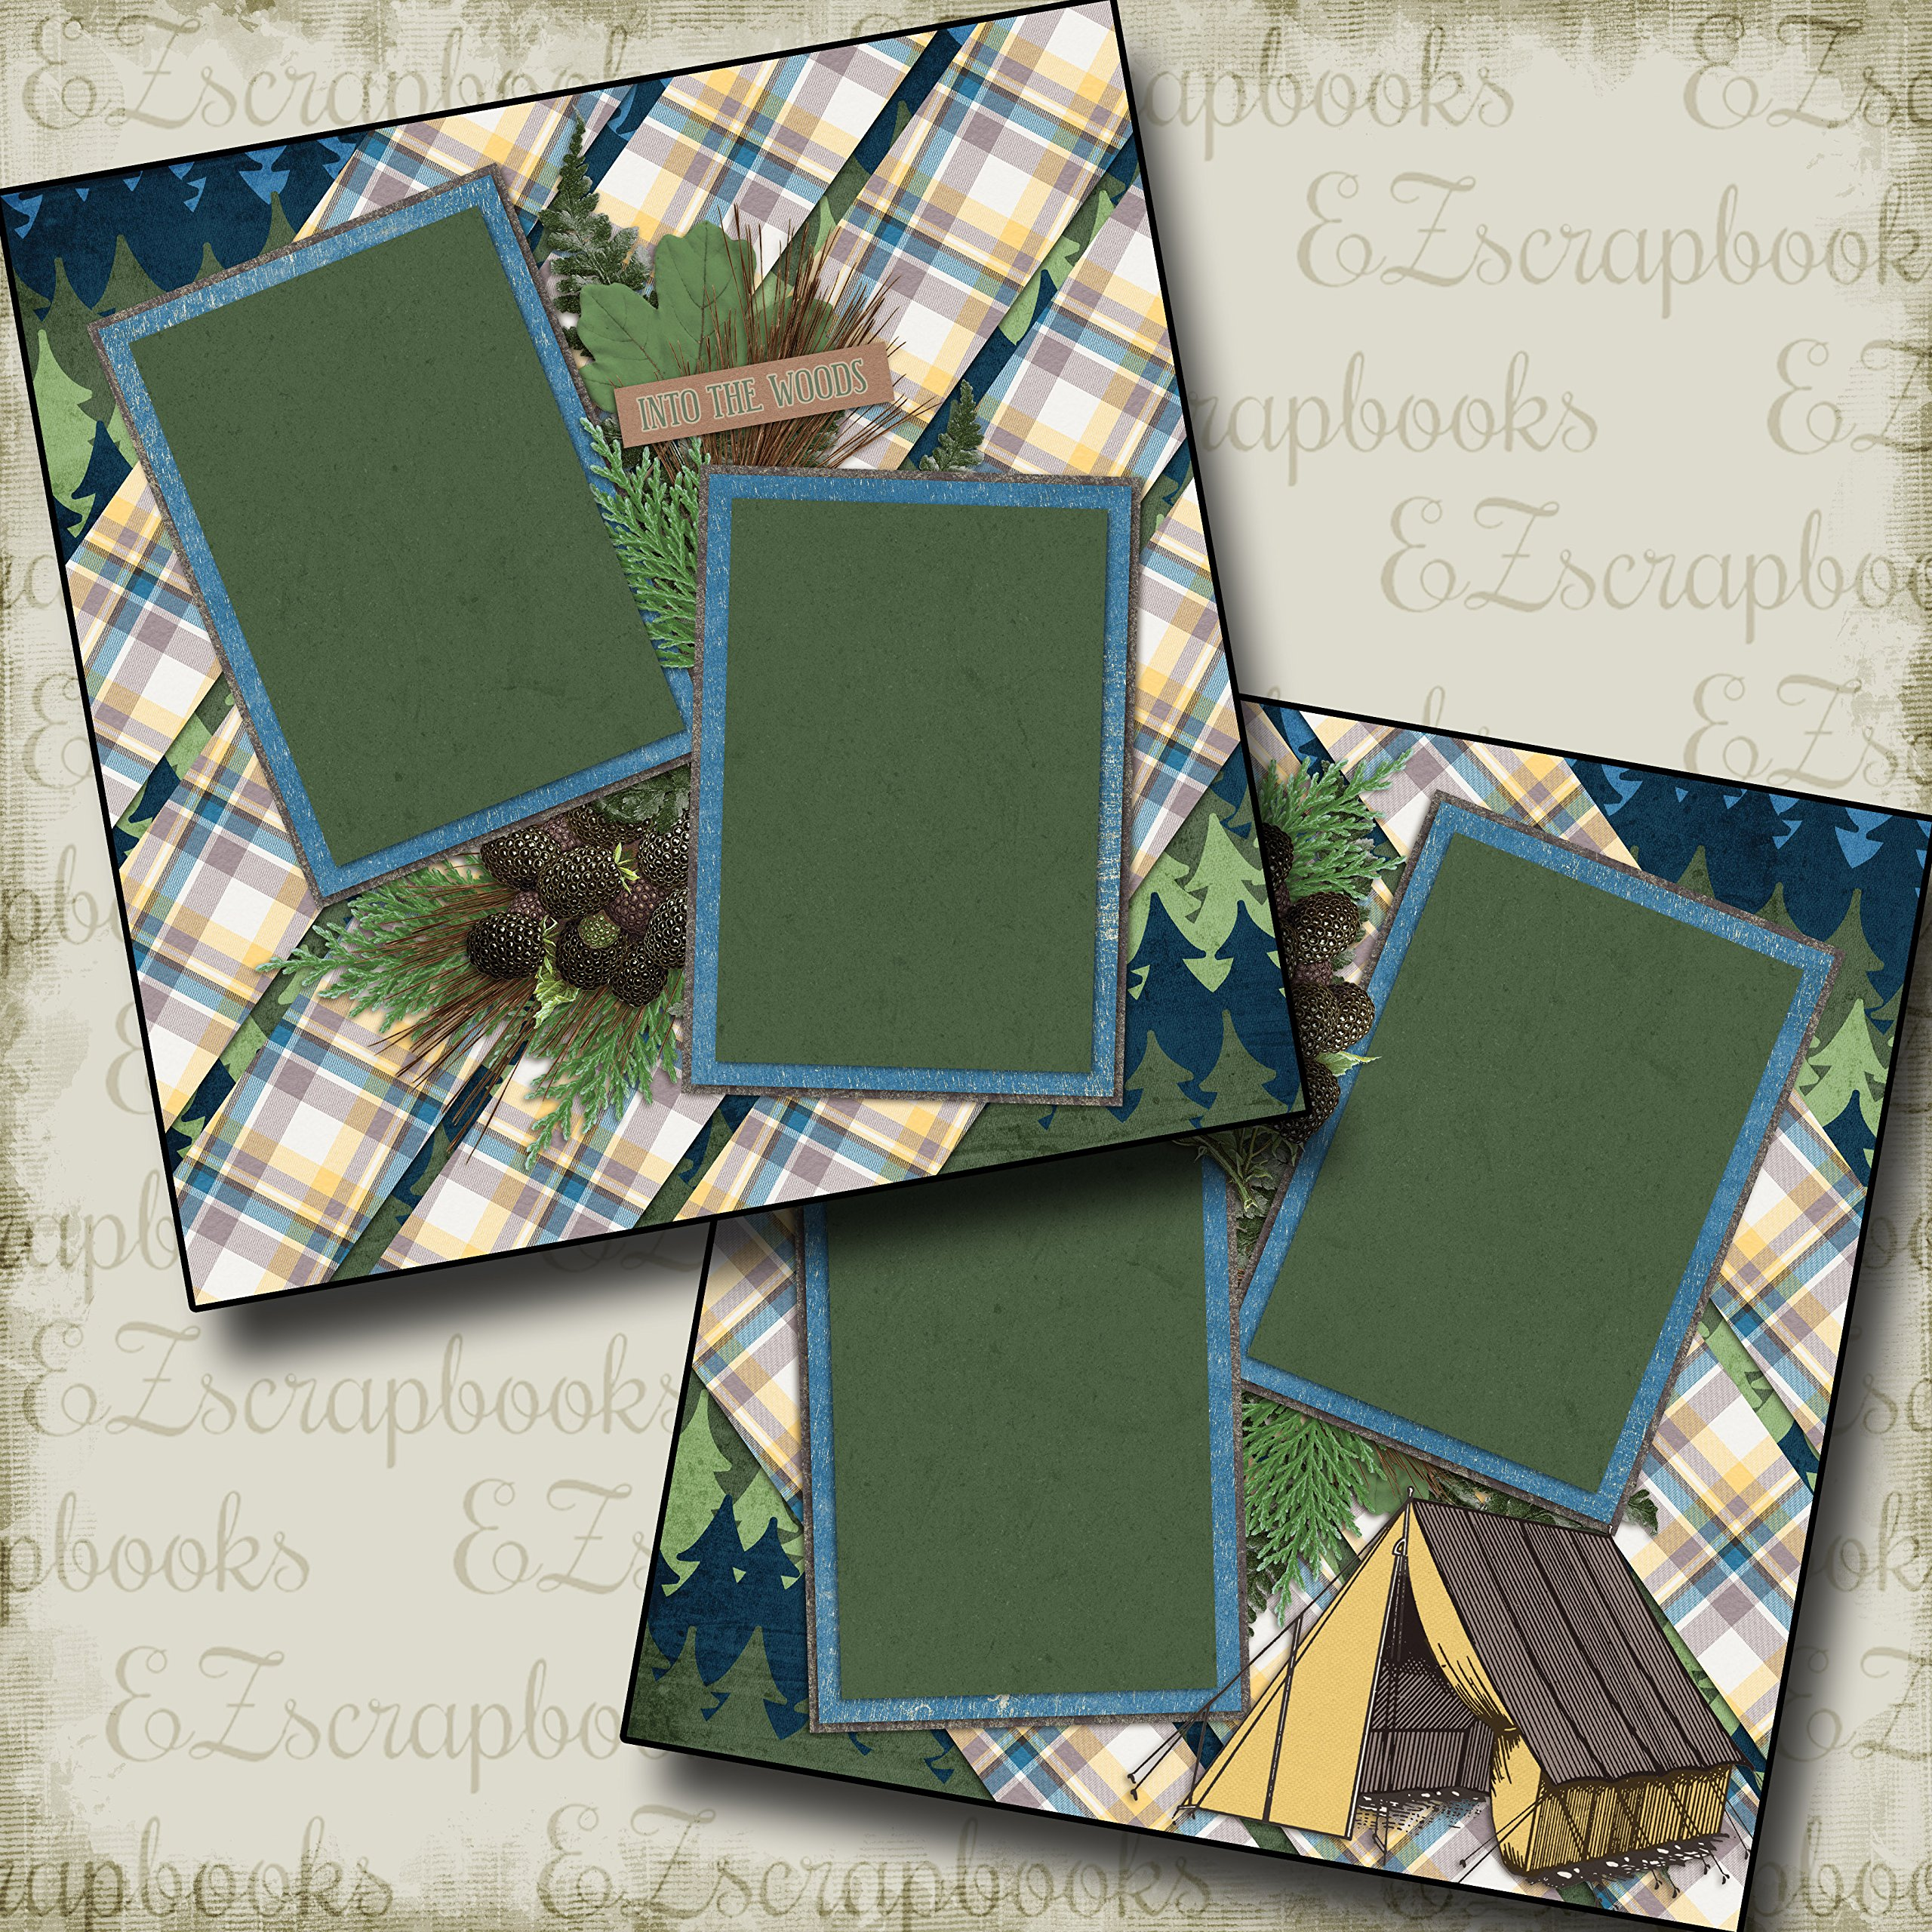 INTO THE WOODS - Premade Scrapbook Pages - EZ Layout 2080